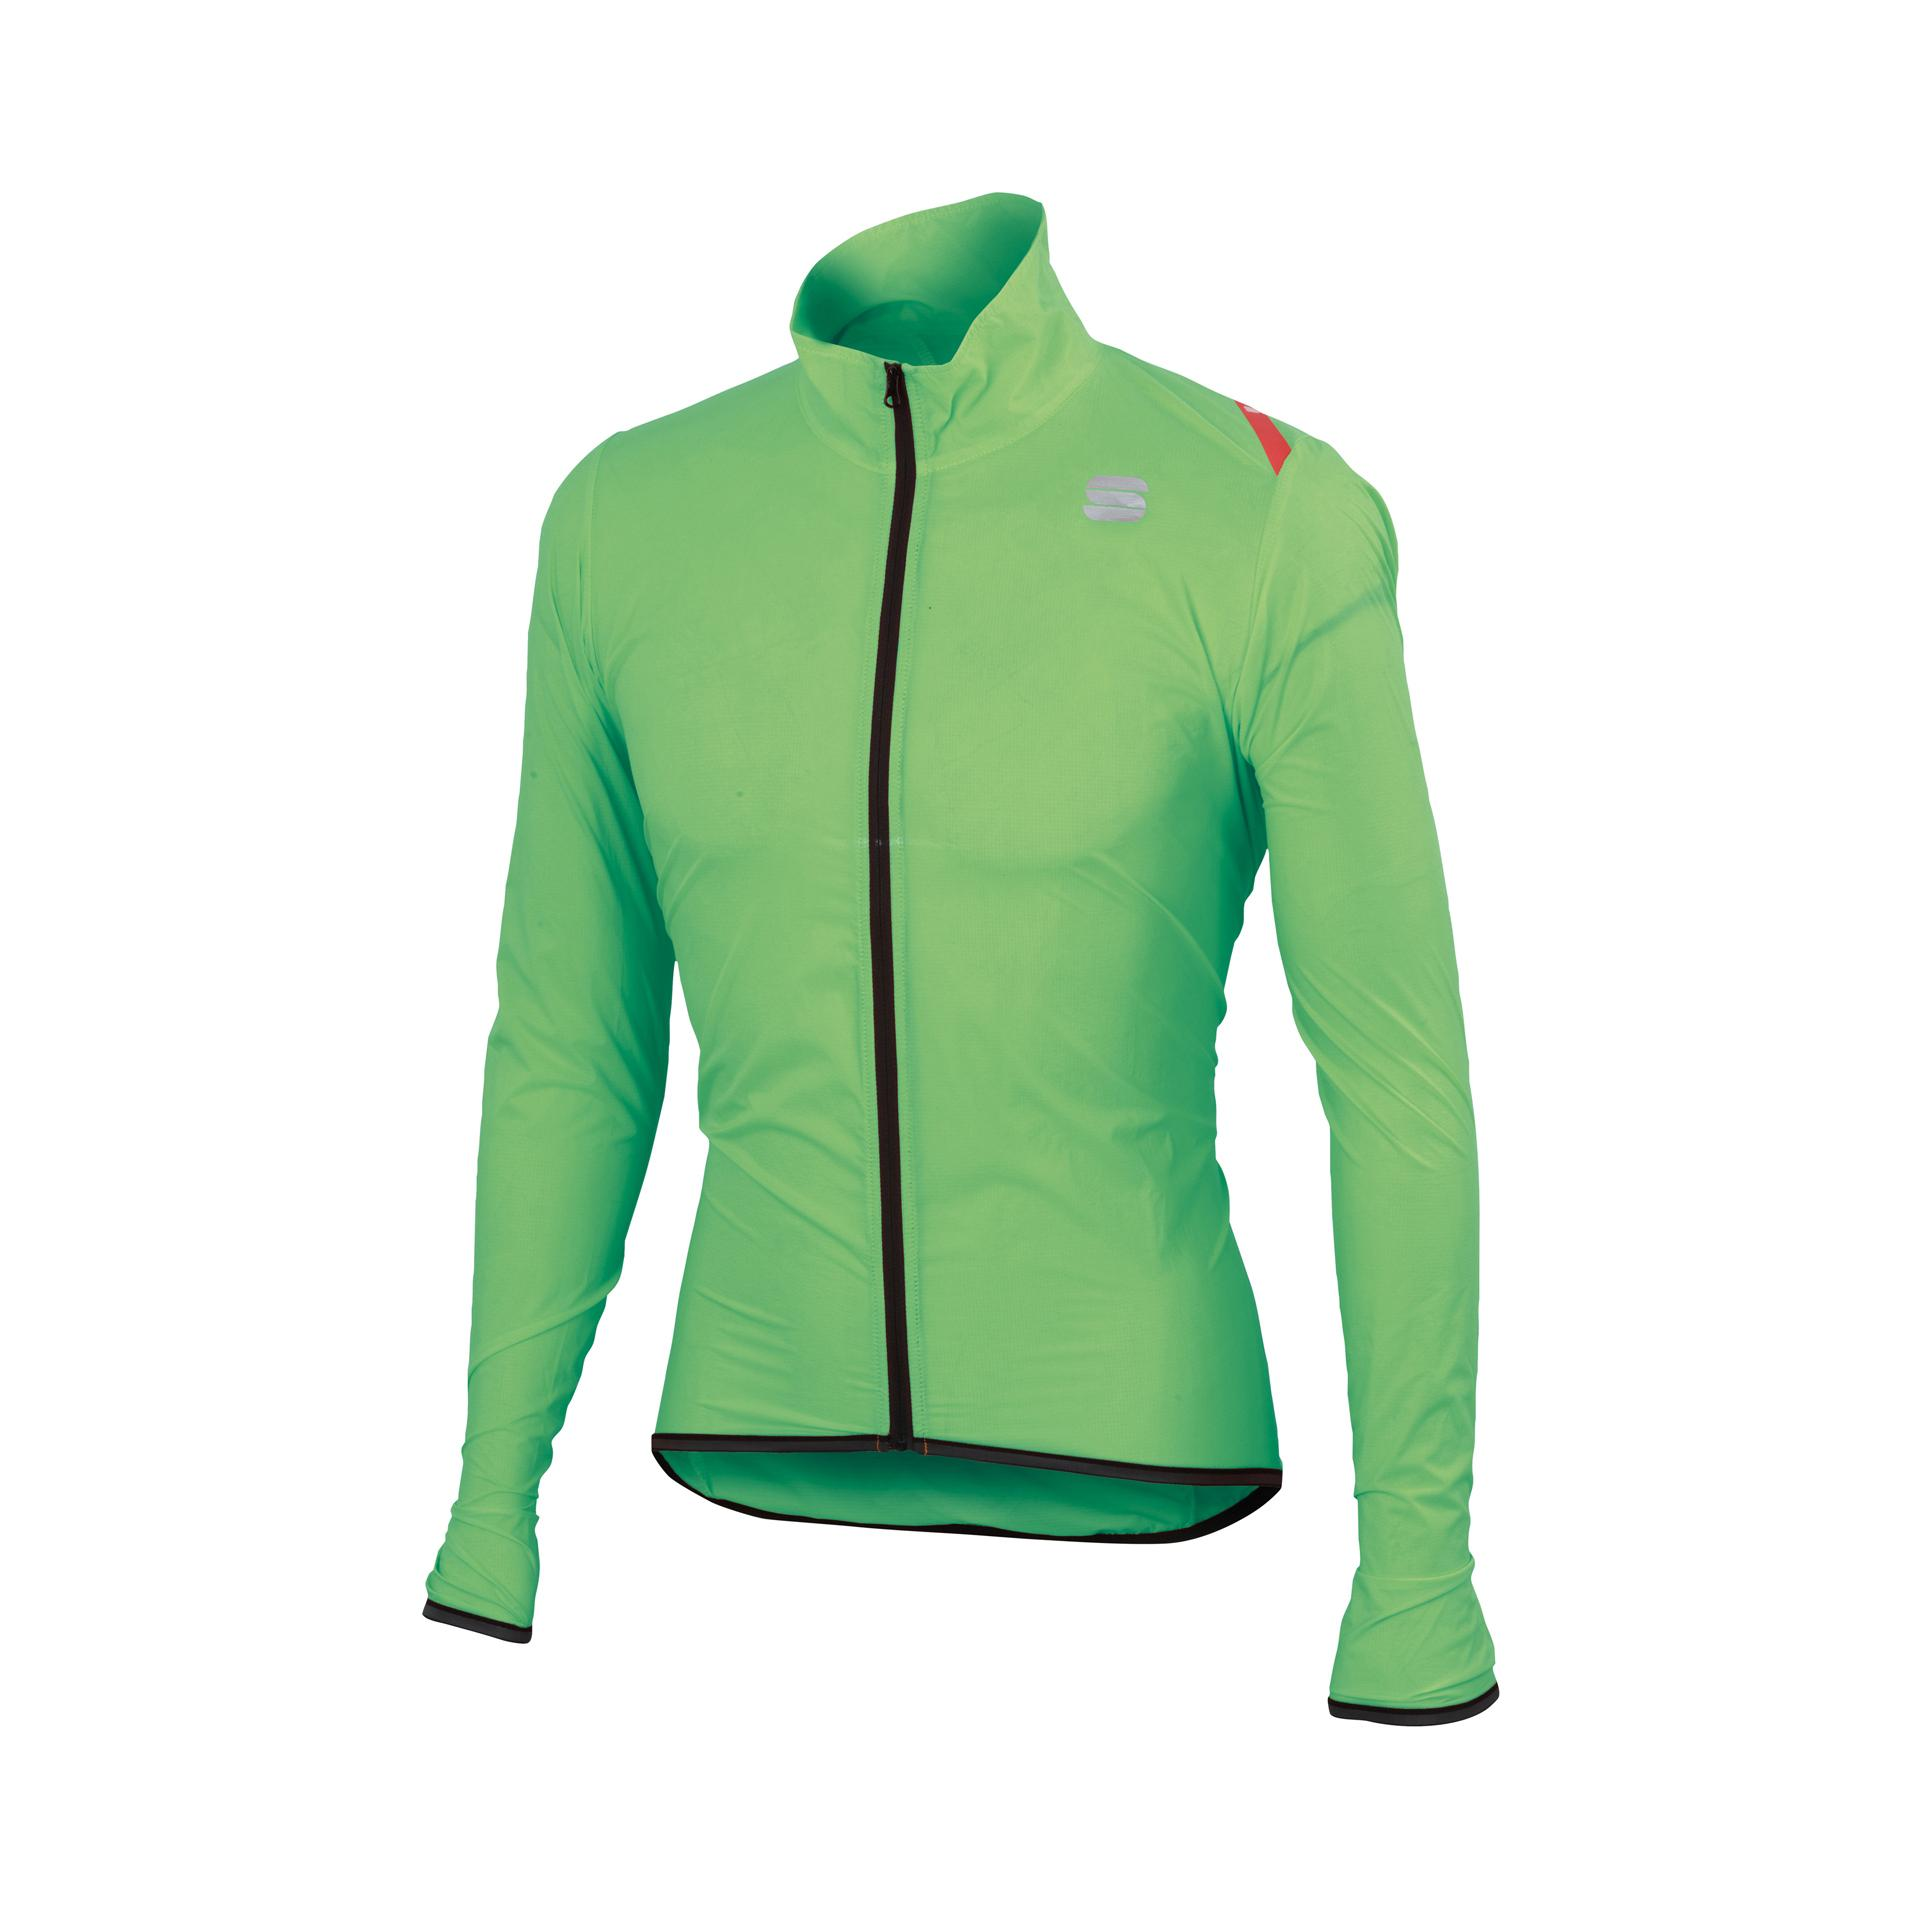 Afbeelding Sportful regenjack Heren Fluo / SF Hot Pack 6 Jacket-Green Fluo